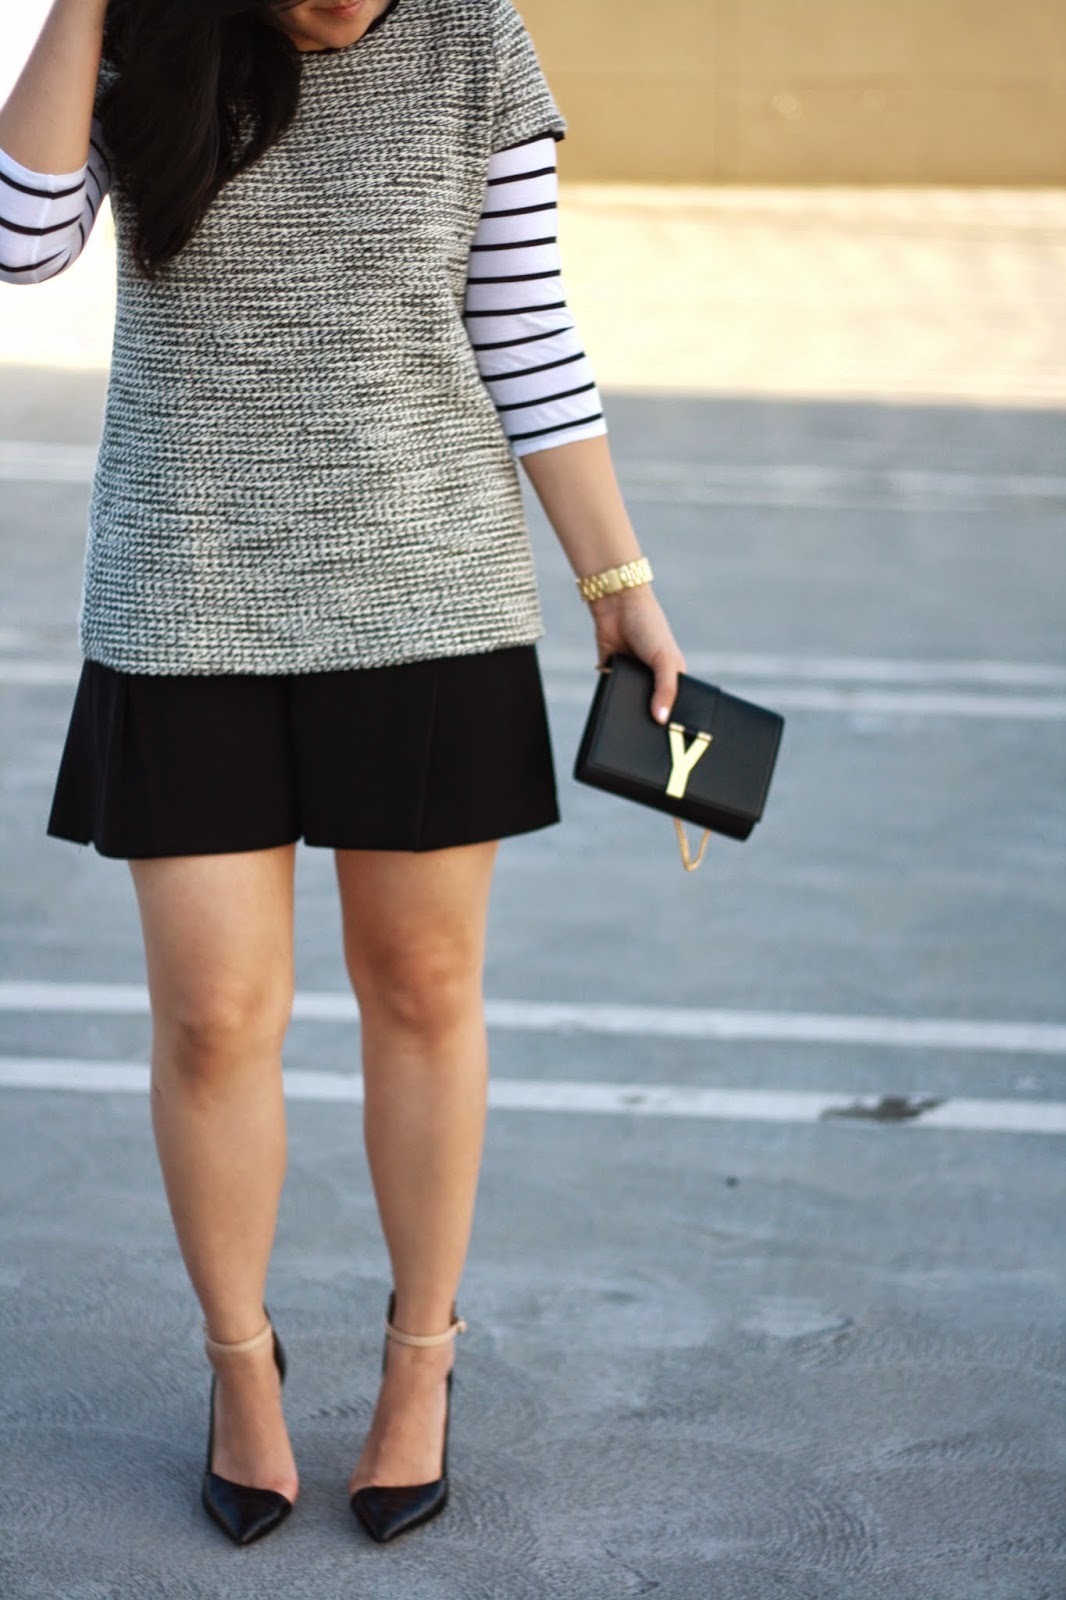 blogger, simplyxclassic, zara, loft, mommy blog, fashion, style, tweed, stripes, ysl, saint laurent,